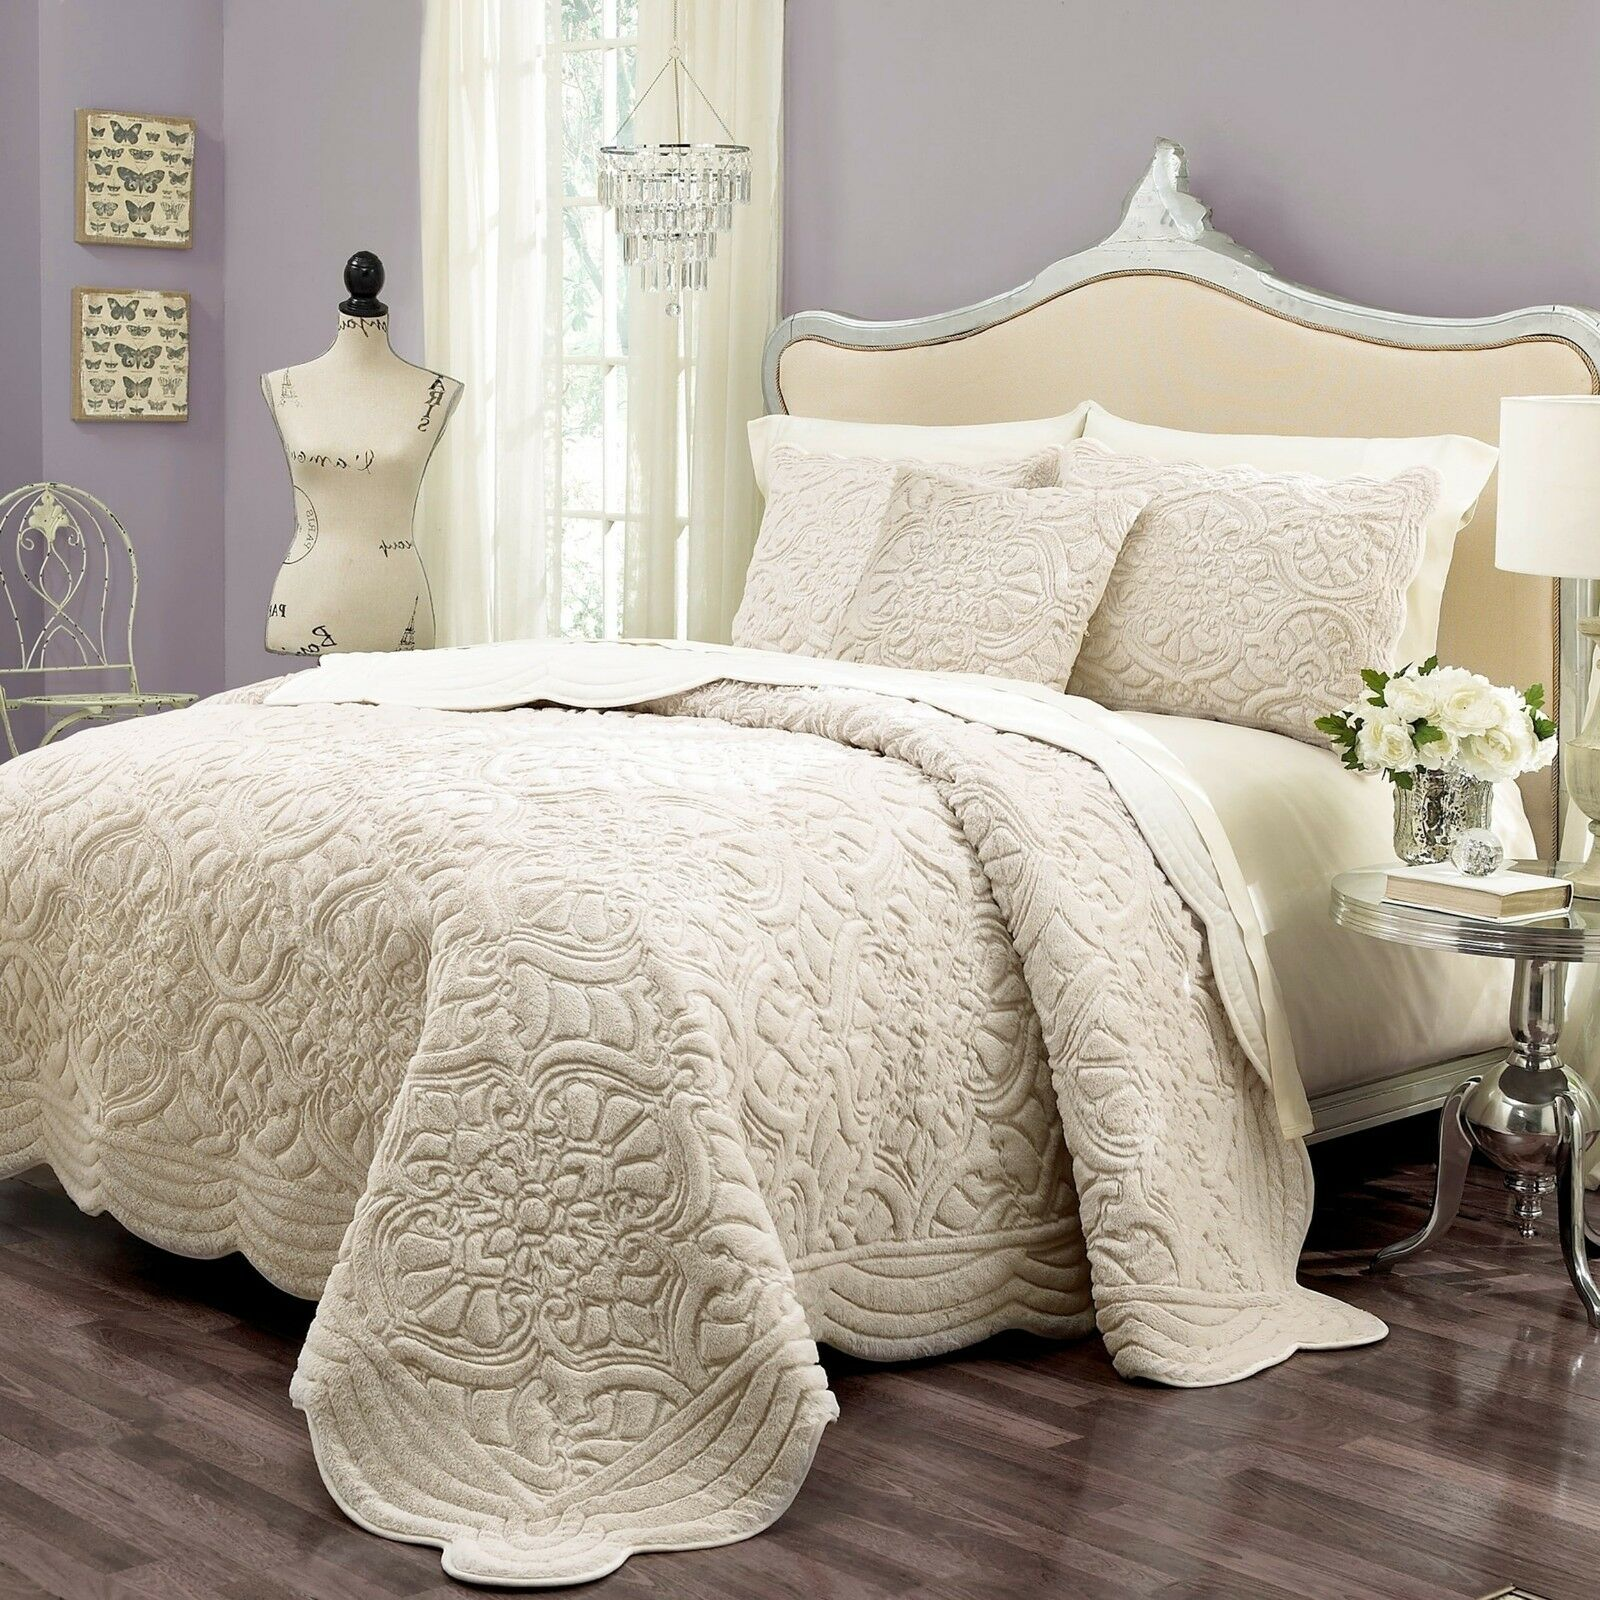 Elegant Ivory Faux Mink Fur Embroidery King Queen 3 pcs Coverlet Set